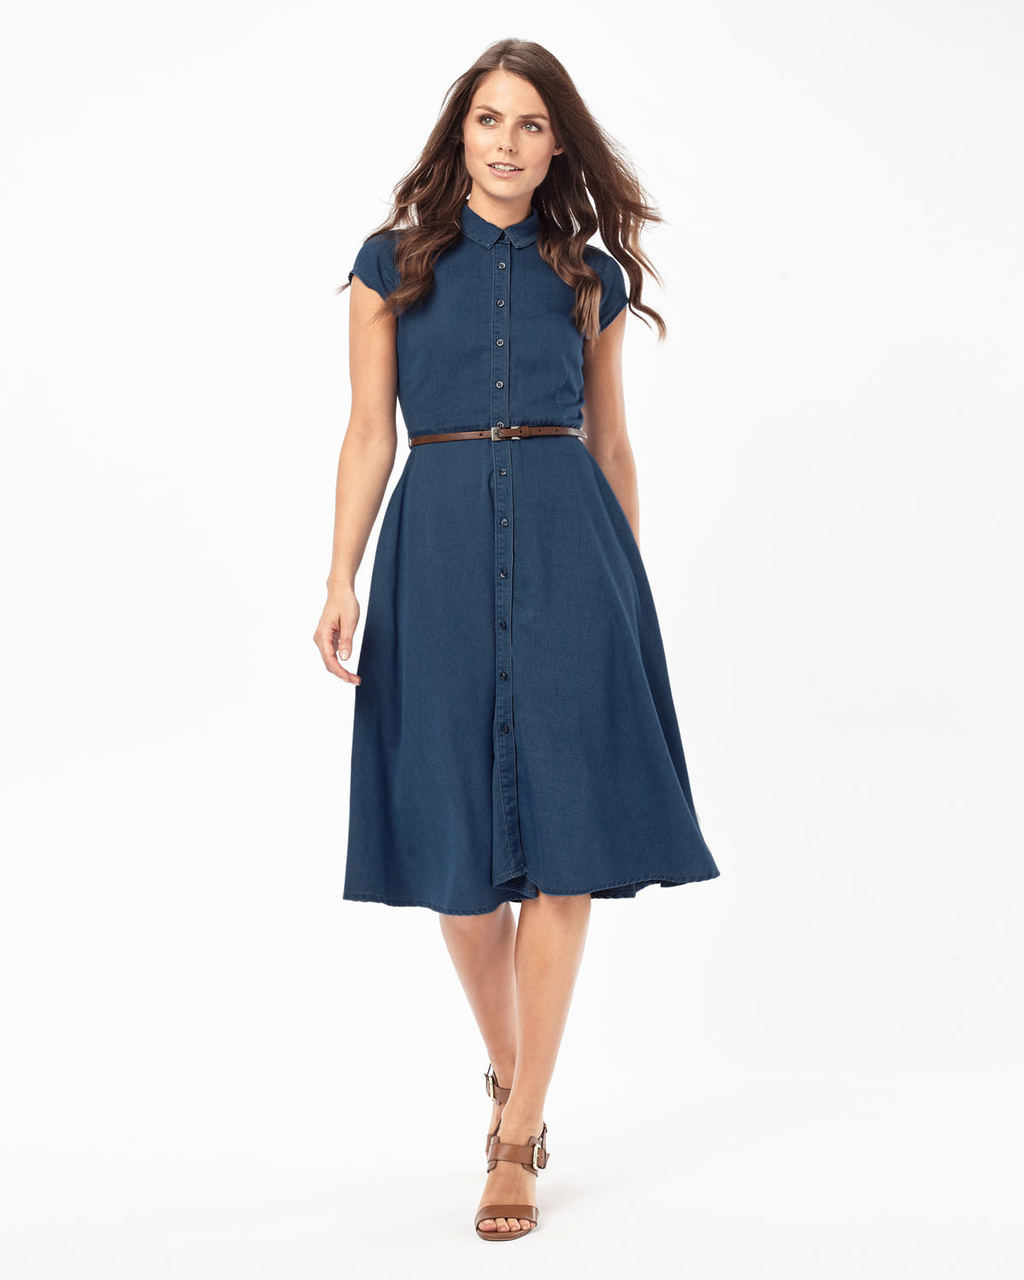 Sophie Denim Chambray Dress - style: shirt; neckline: shirt collar/peter pan/zip with opening; sleeve style: capped; pattern: plain; waist detail: belted waist/tie at waist/drawstring; predominant colour: navy; occasions: casual, creative work; length: on the knee; fit: fitted at waist & bust; fibres: cotton - 100%; hip detail: subtle/flattering hip detail; sleeve length: short sleeve; texture group: denim; pattern type: fabric; season: s/s 2016; wardrobe: basic